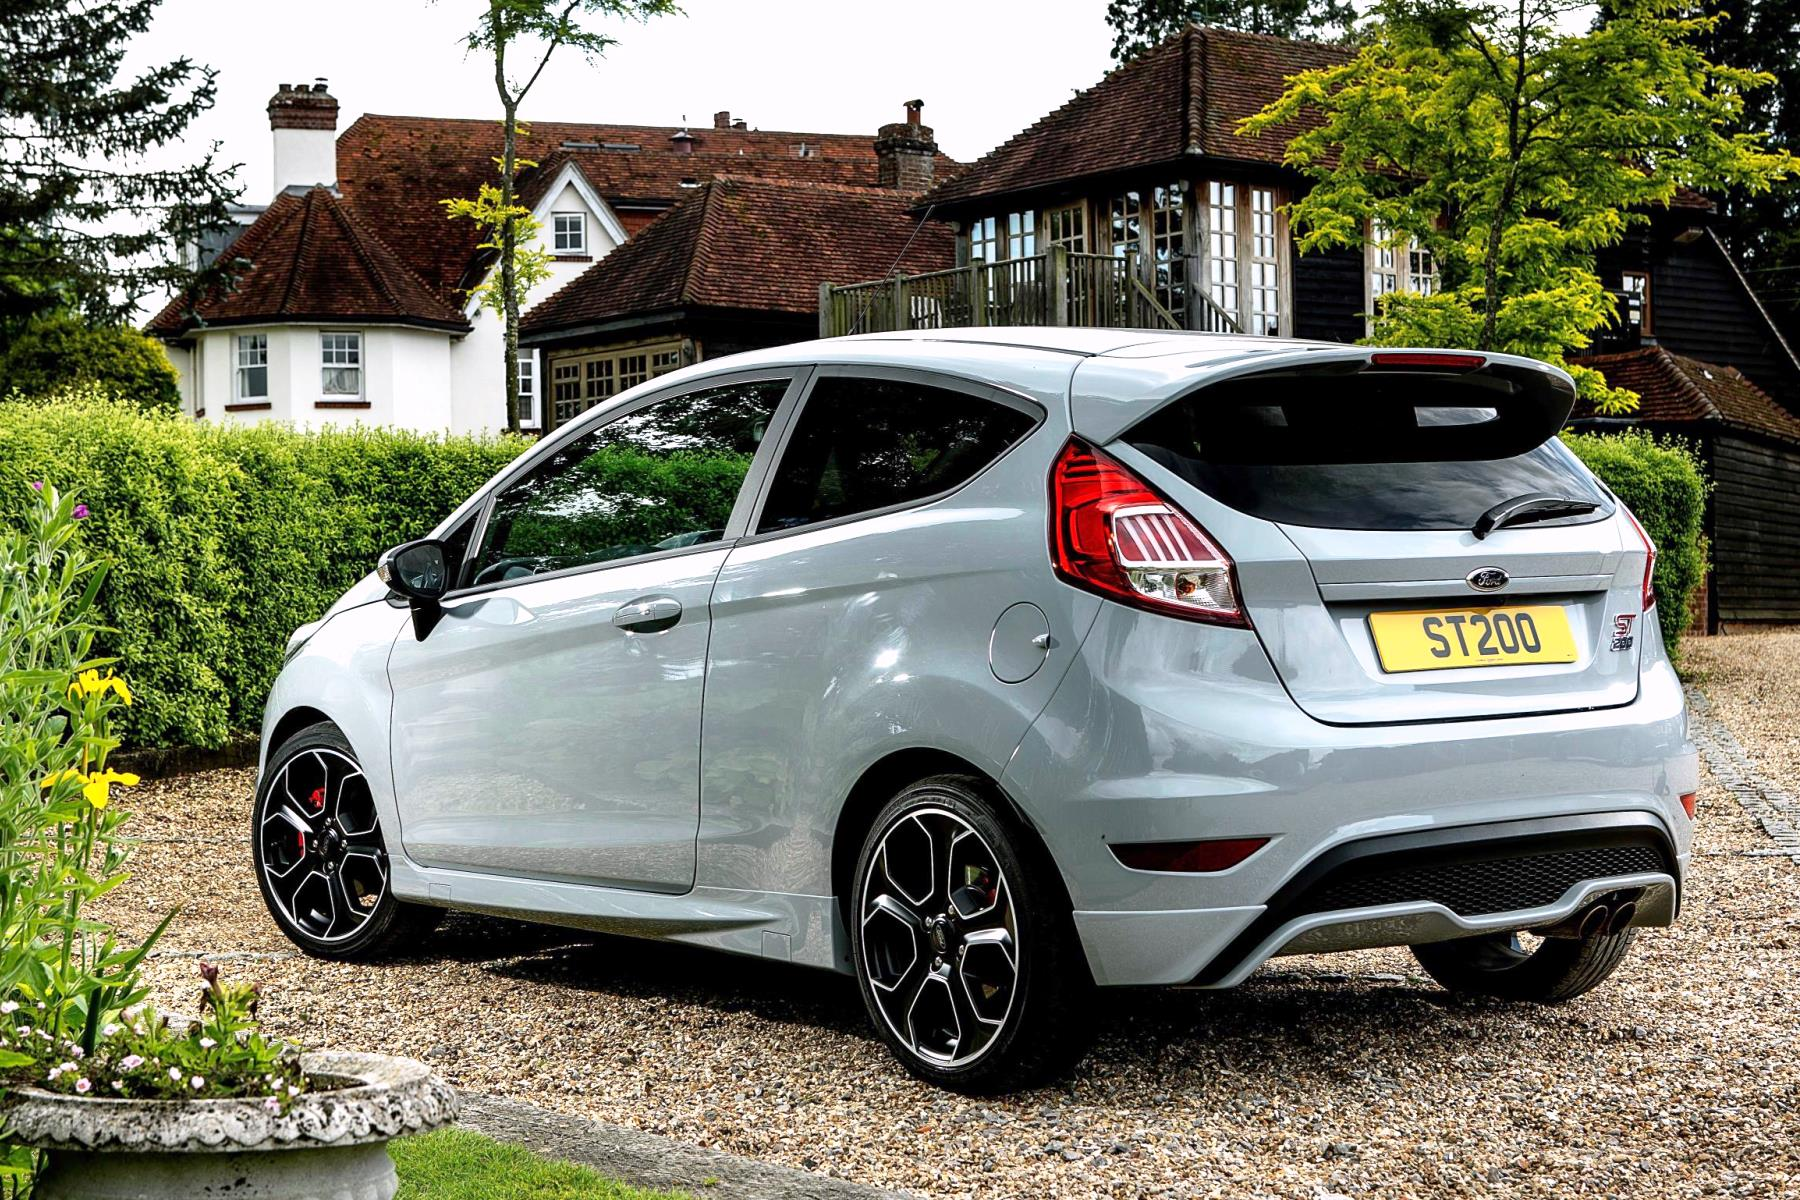 ford fiesta st200 review the best dash cams a selection of the best dashboard cameras available. Black Bedroom Furniture Sets. Home Design Ideas